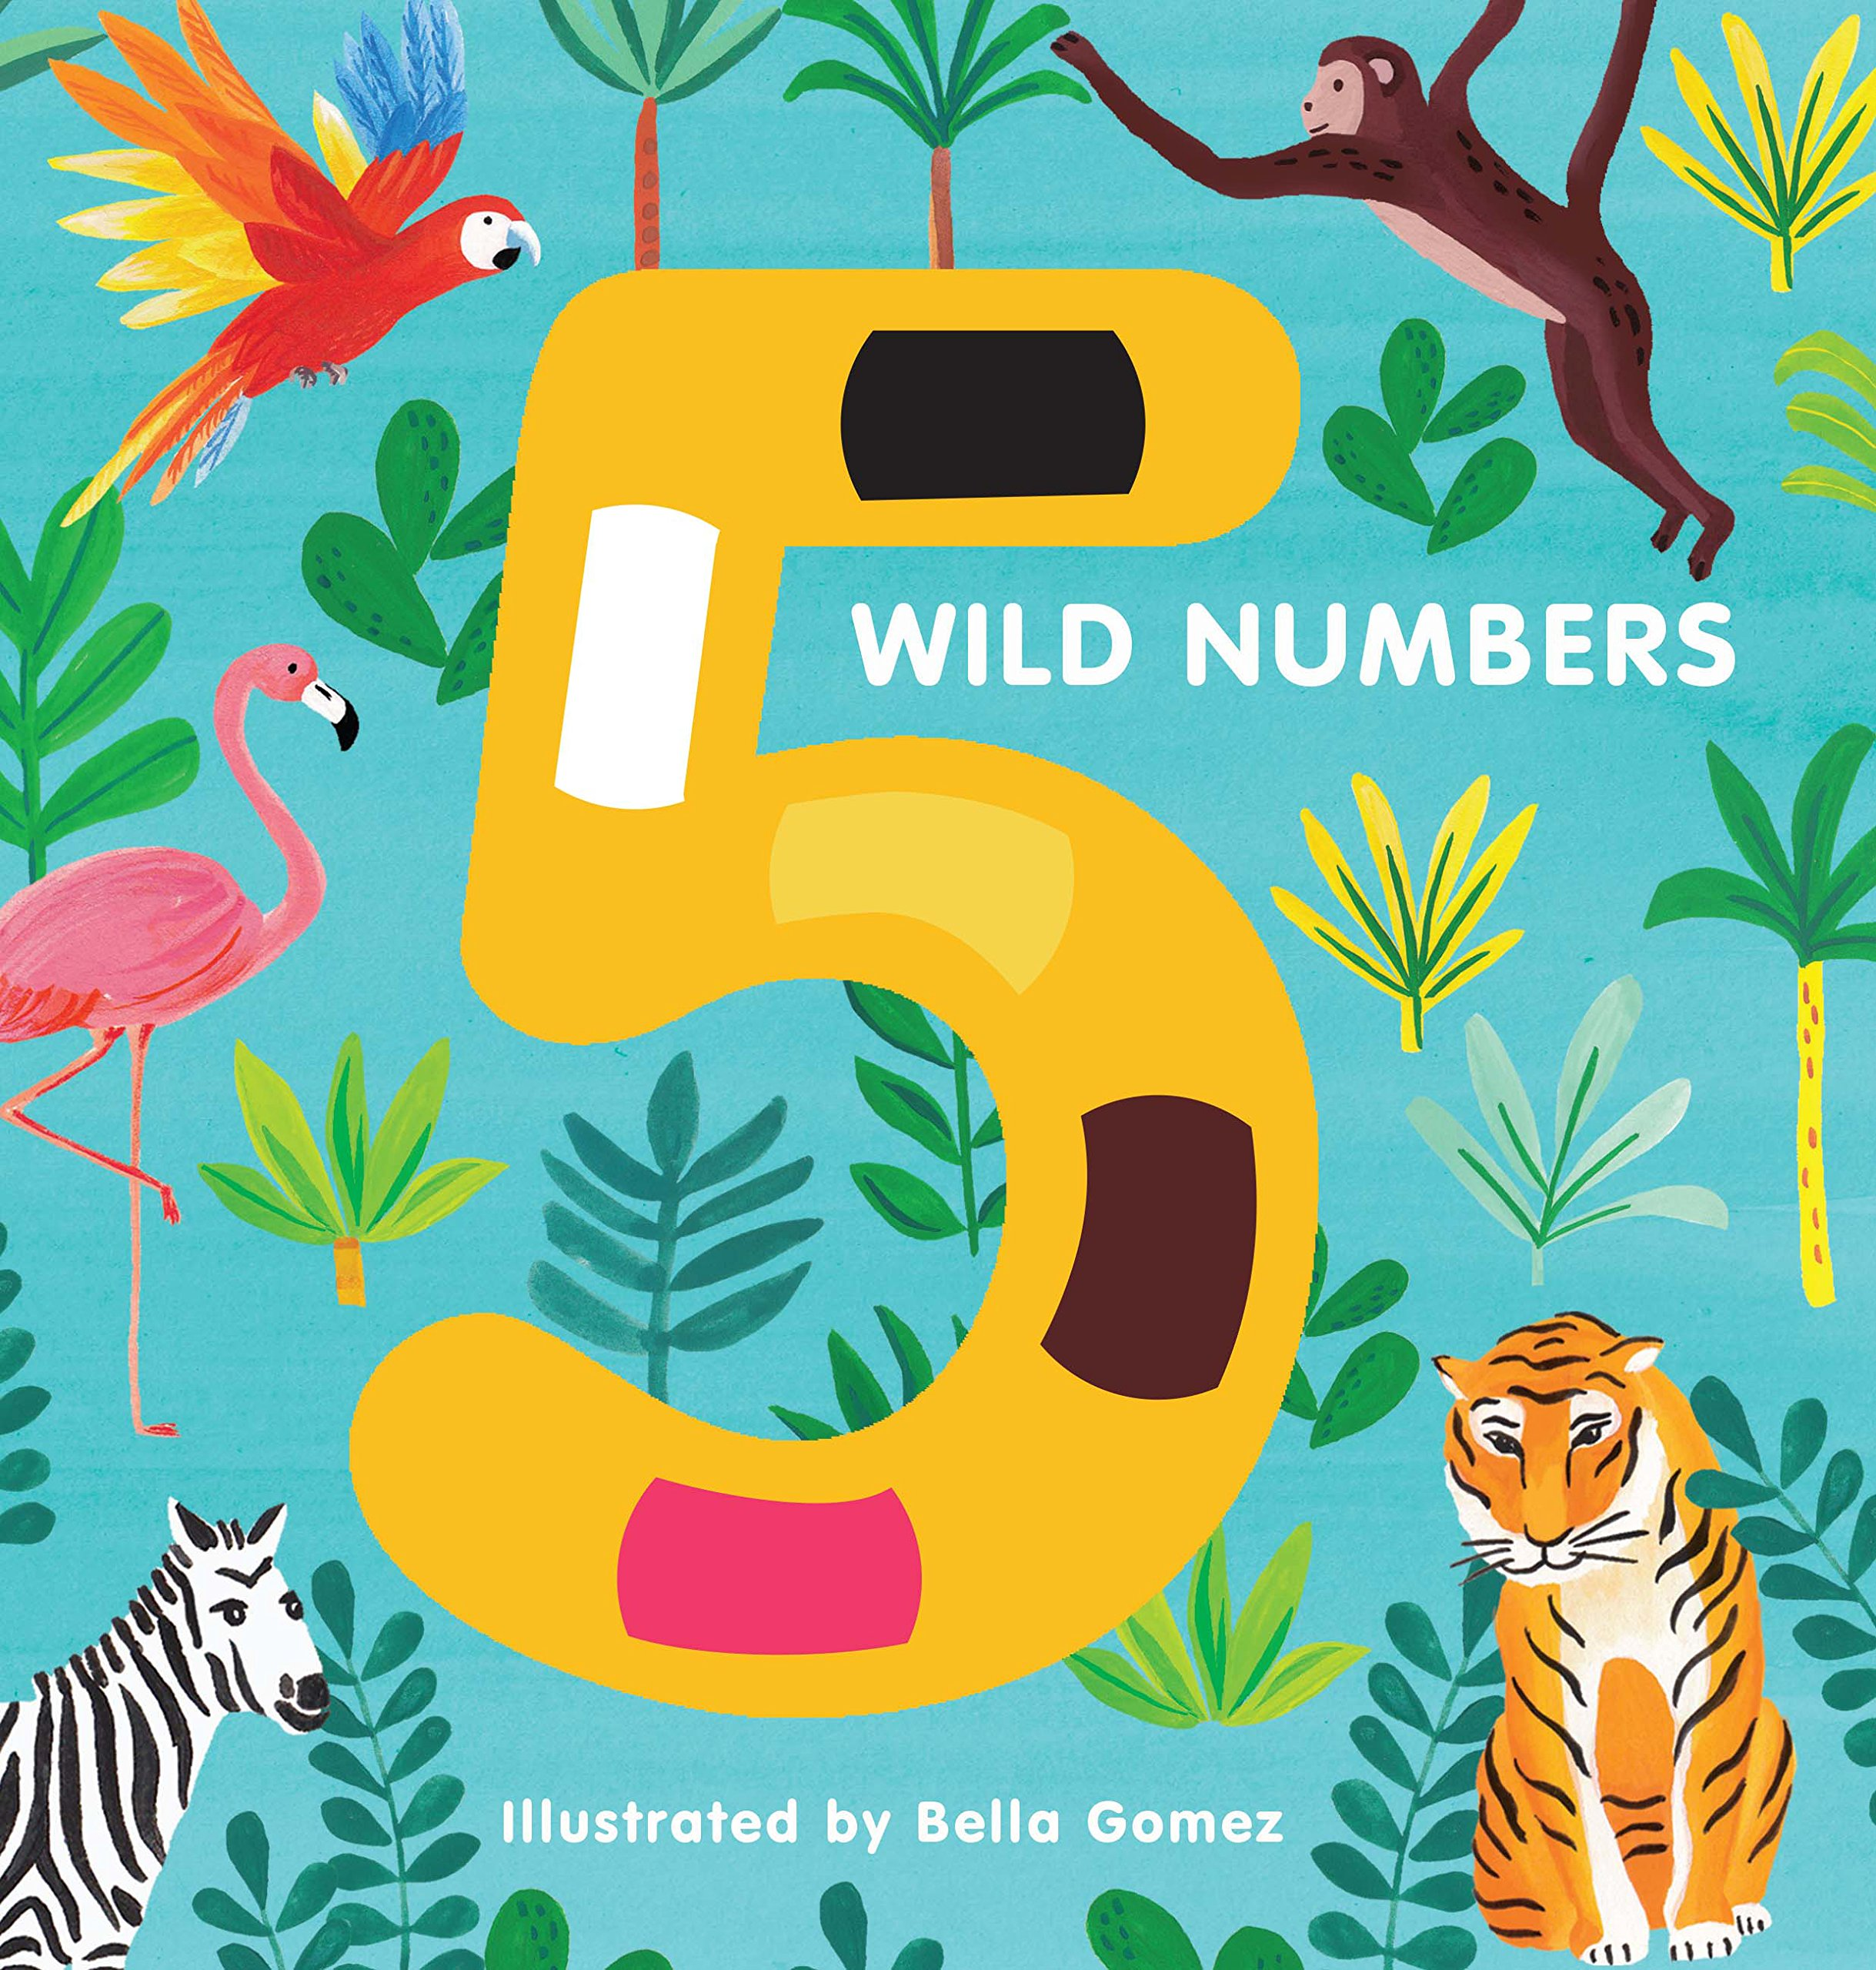 5 Wild Numbers: Amazon.co.uk: Bella Gomez: Books